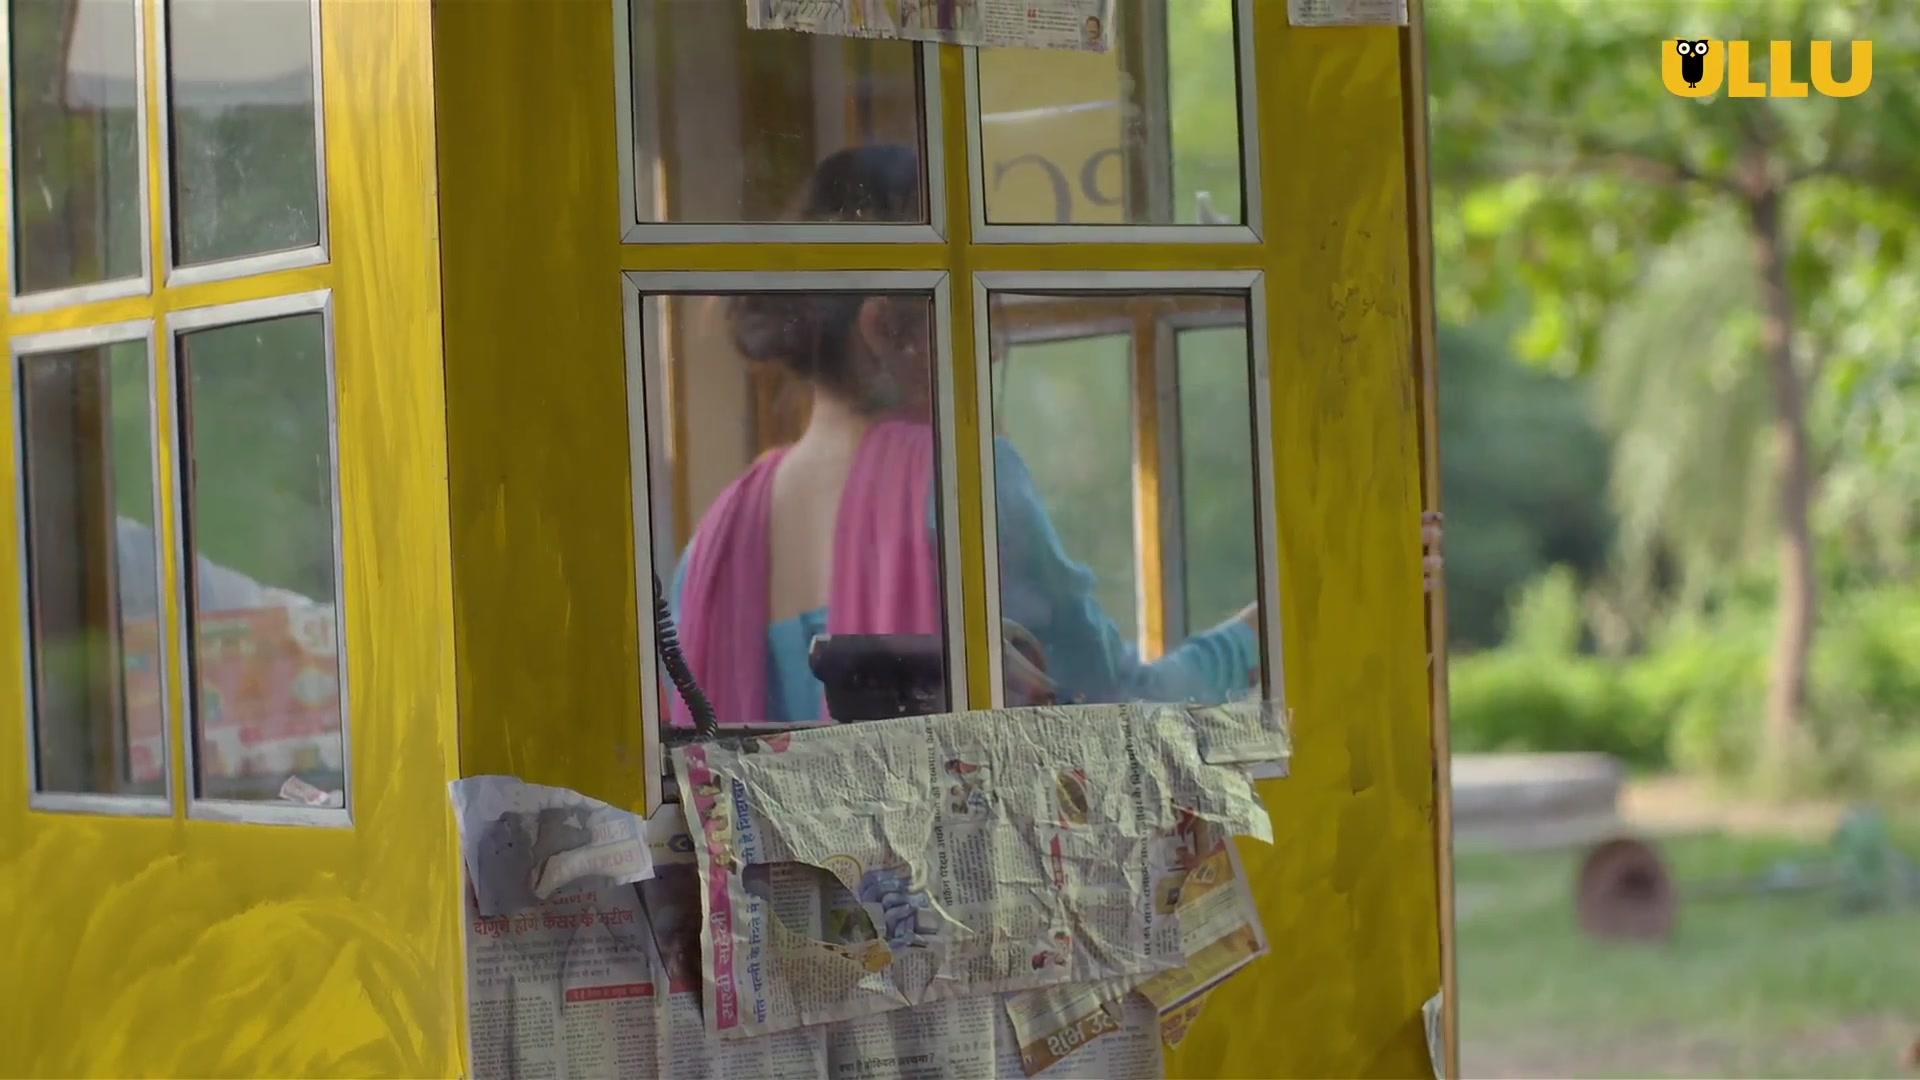 Charmsukh (Telephone Booth) ULLU Originals S01 E11 1080p WEB-DL X264 AAC -DDR